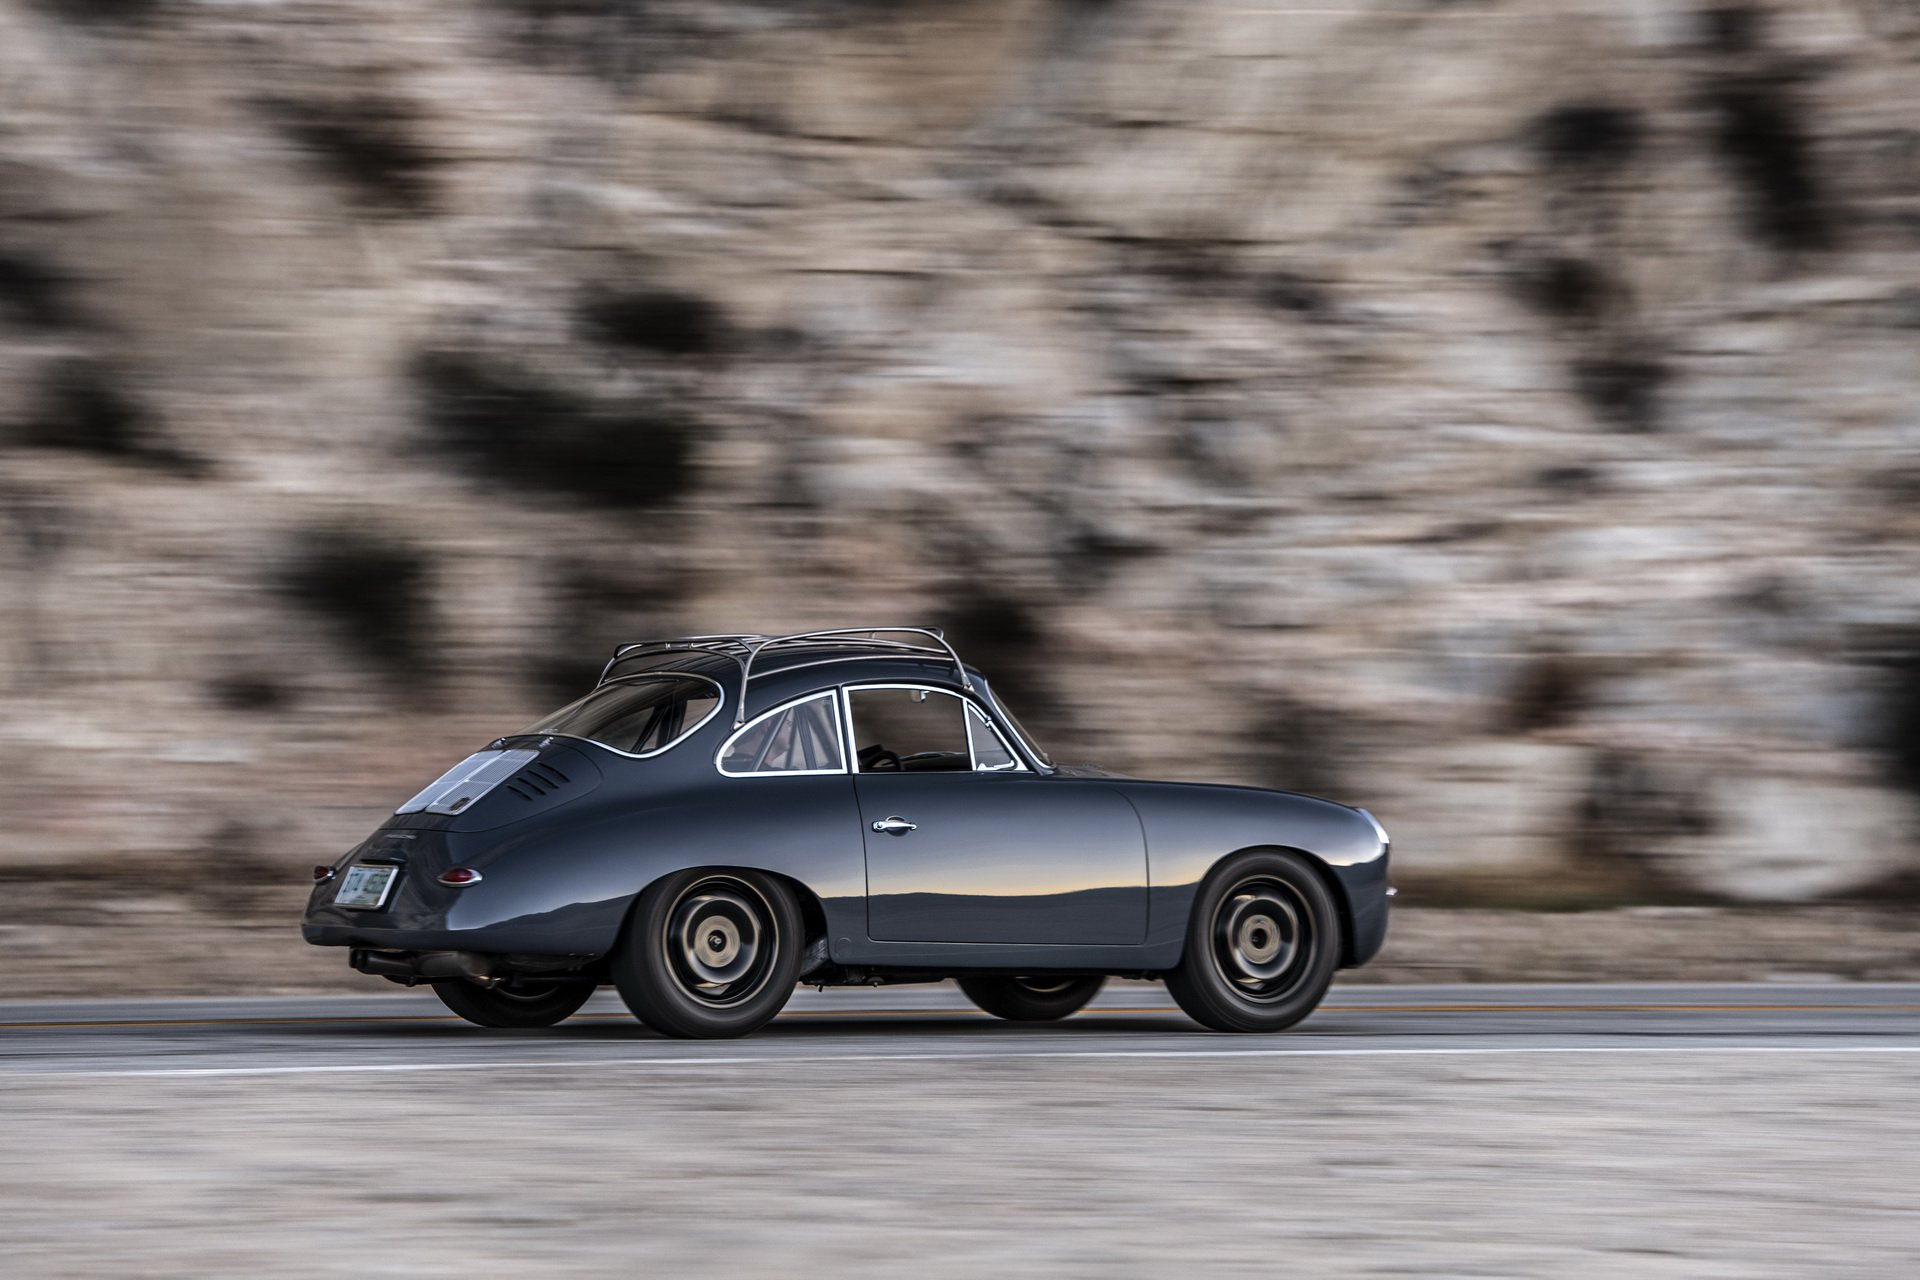 AWD Porsche 356 Coupe by Emory Motorsports (29)